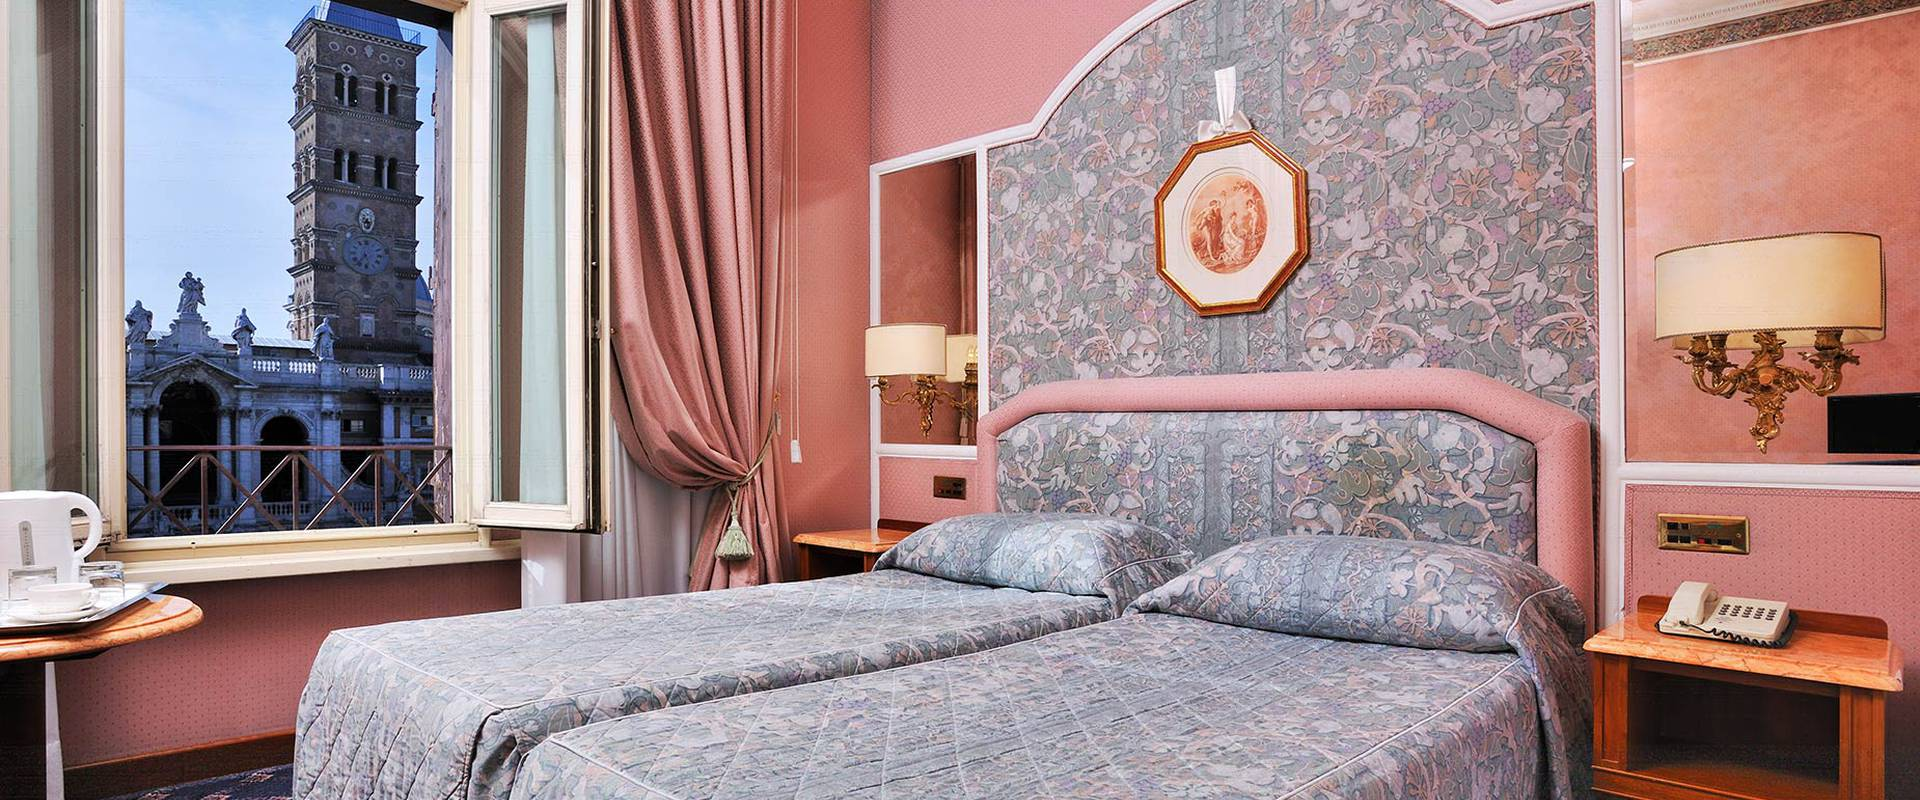 PERFECTLY SOUNDPROOF Mecenate Palace Hotel Rome